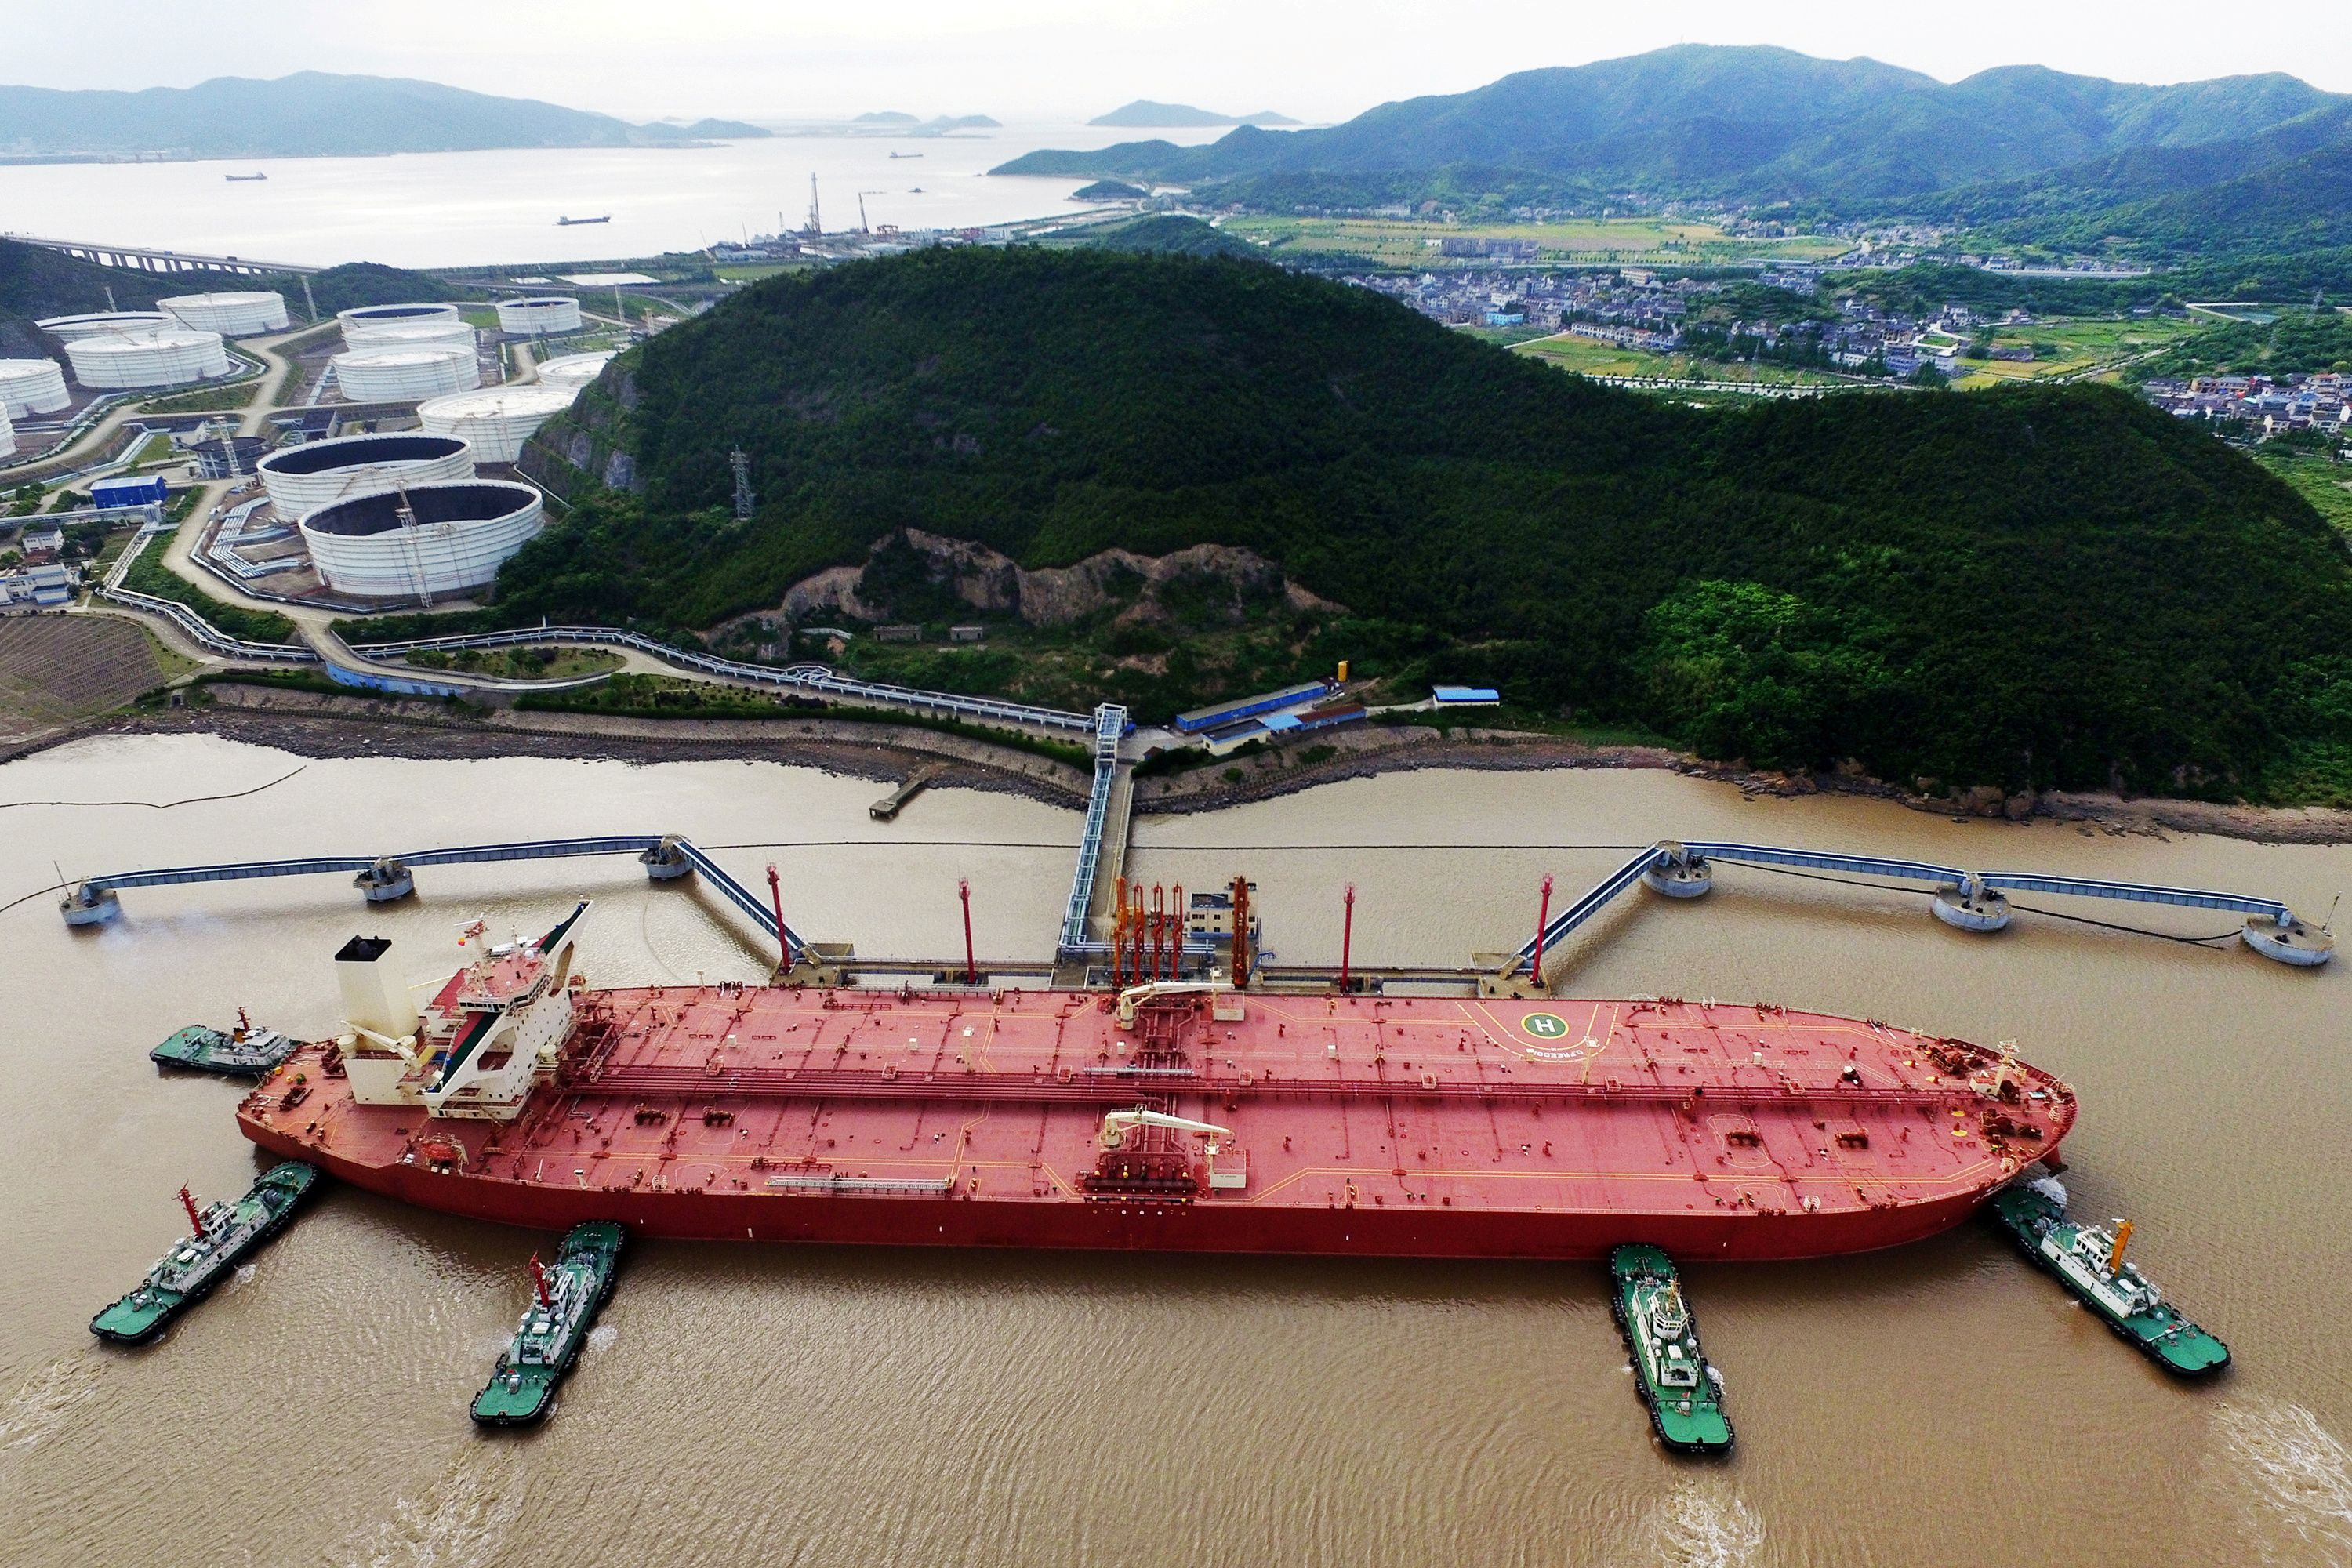 A VLCC oil tanker is seen at a crude oil terminal in Ningbo Zhoushan port, Zhejiang province, China May 16, 2017. Picture taken May 16, 2017. REUTERS/Stringer/File Photo